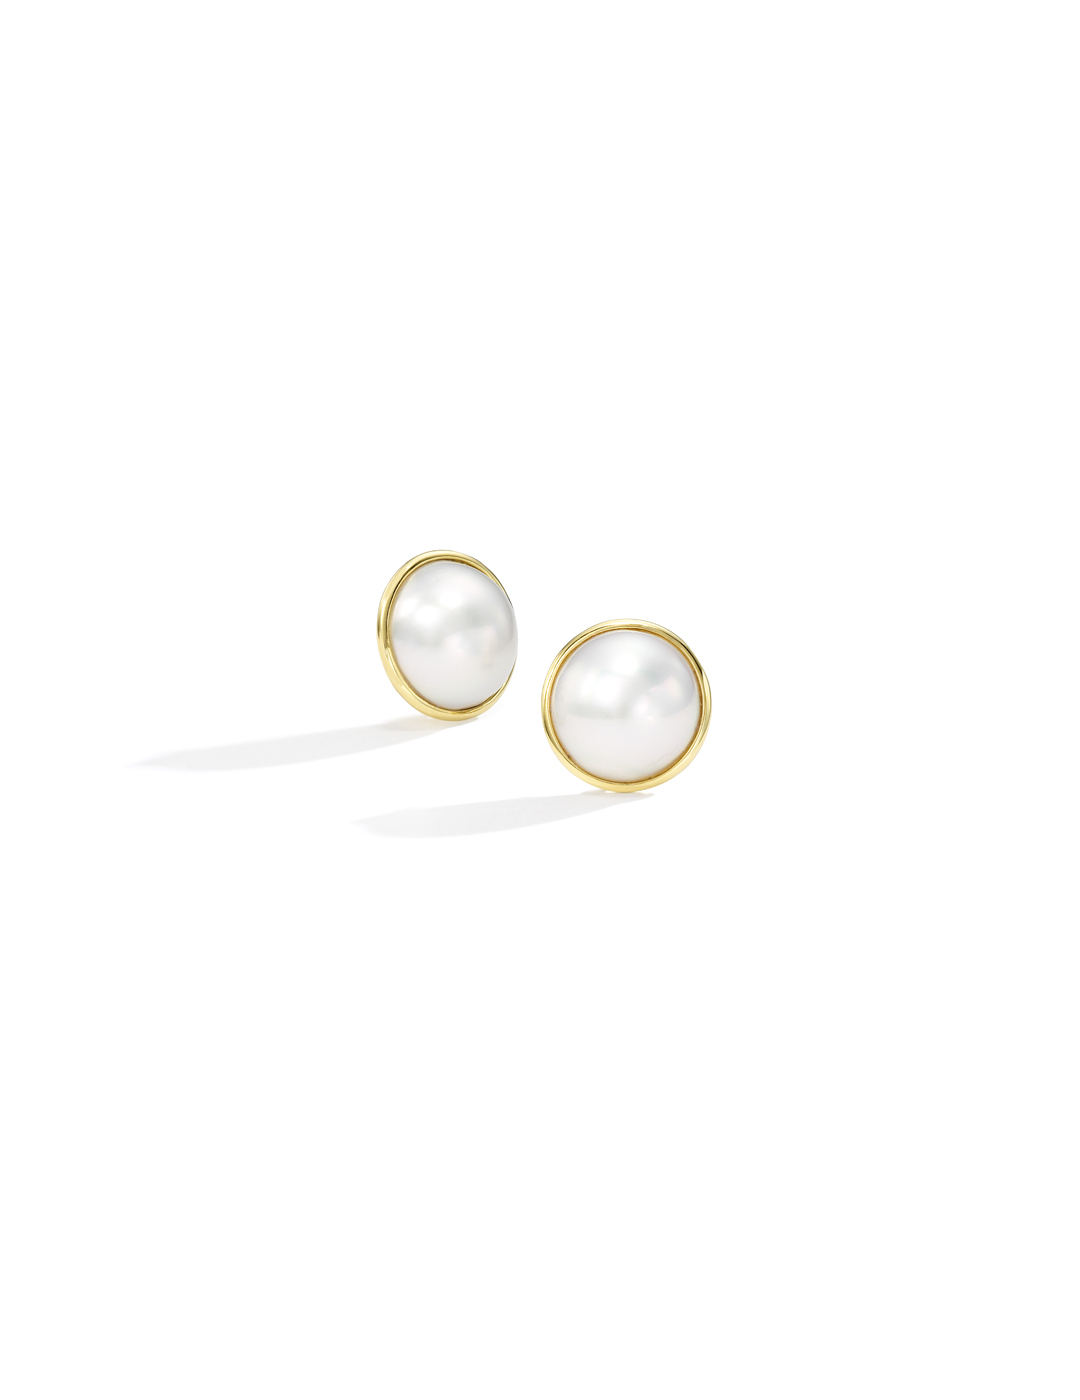 mish_products_earrings_Demilune-Wht SS-ER-1